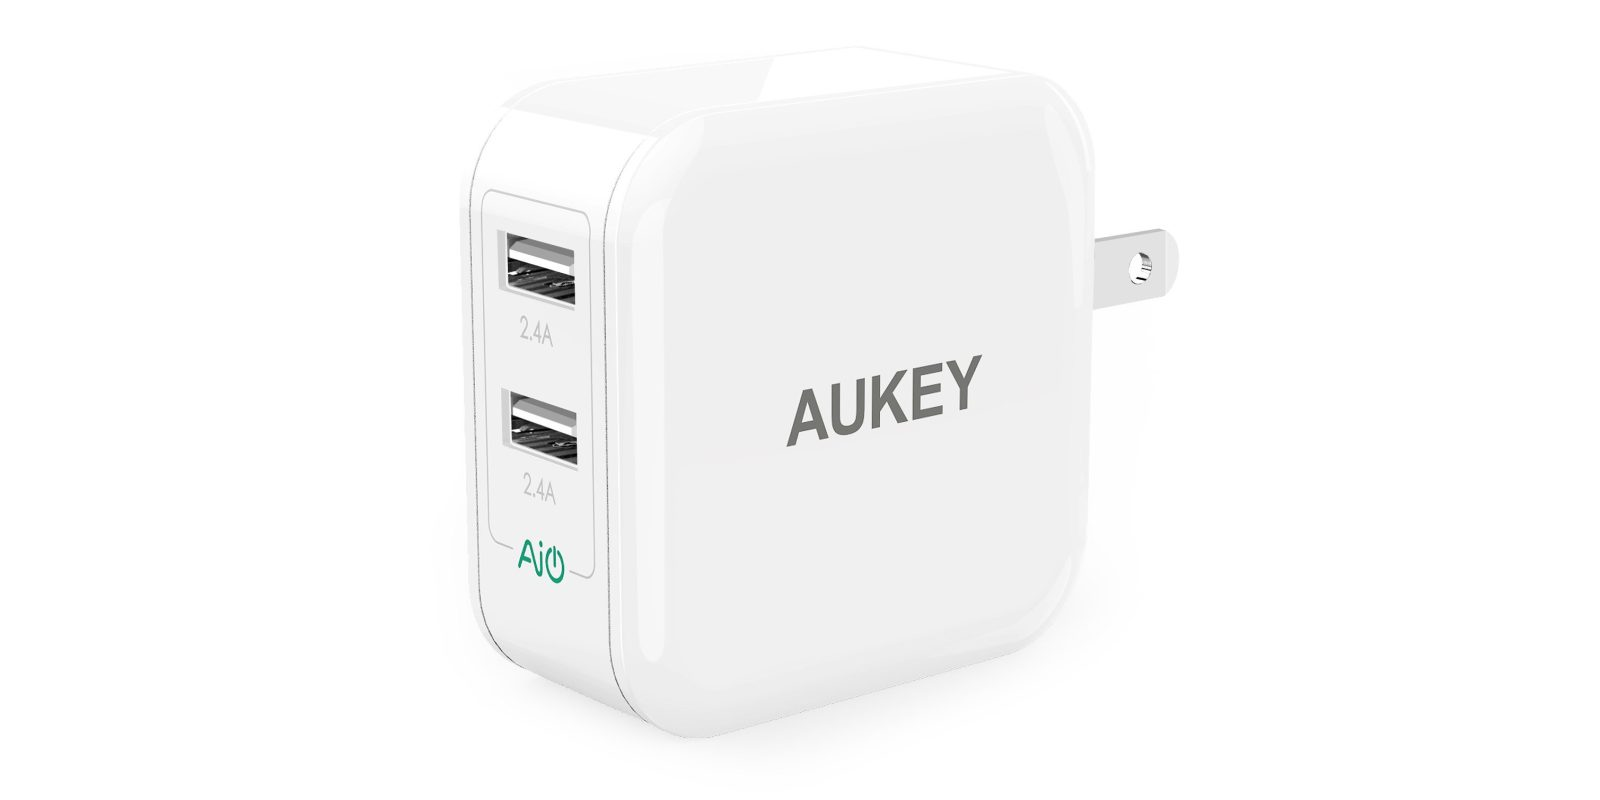 Aukey's $5 Dual-USB Port Wall Charger puts that $19 Apple